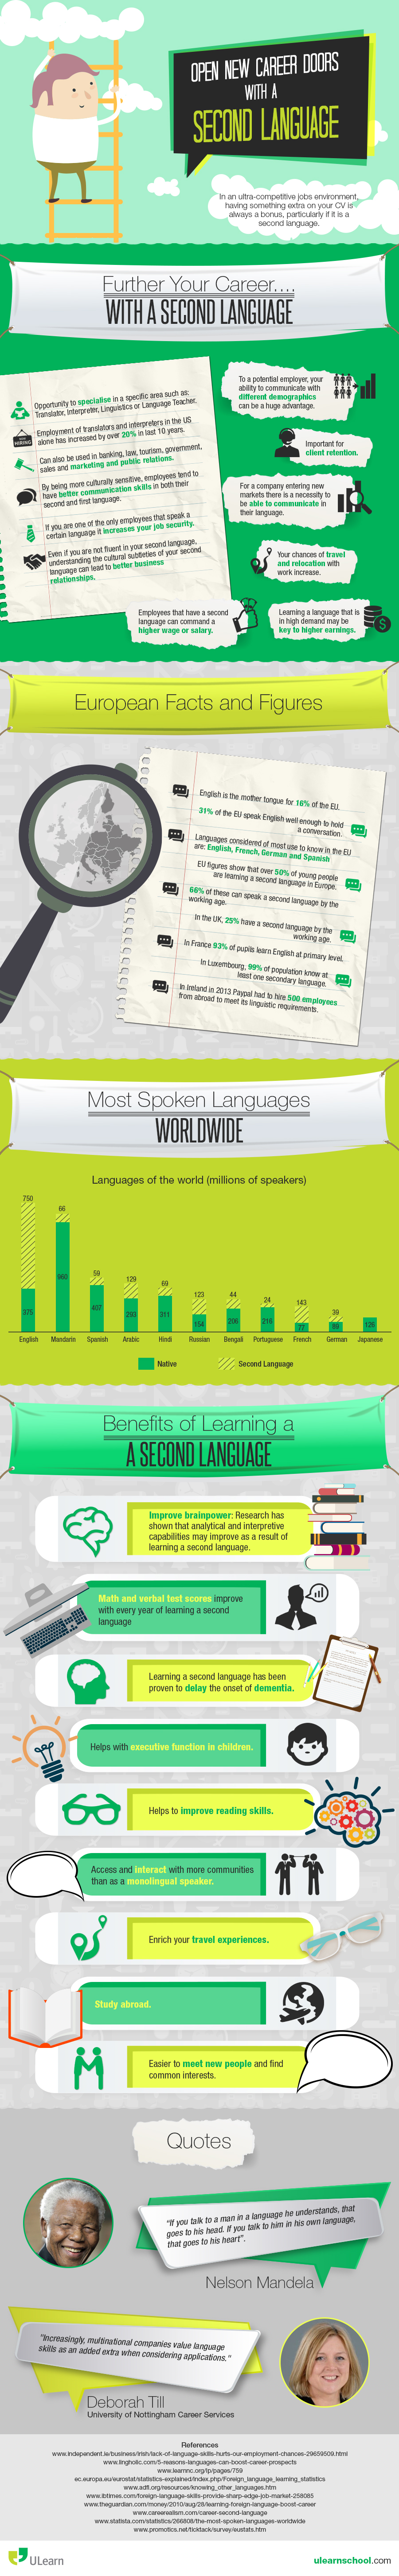 The Hidden Benefits a Second Language Brings to Your Career [Infographic]